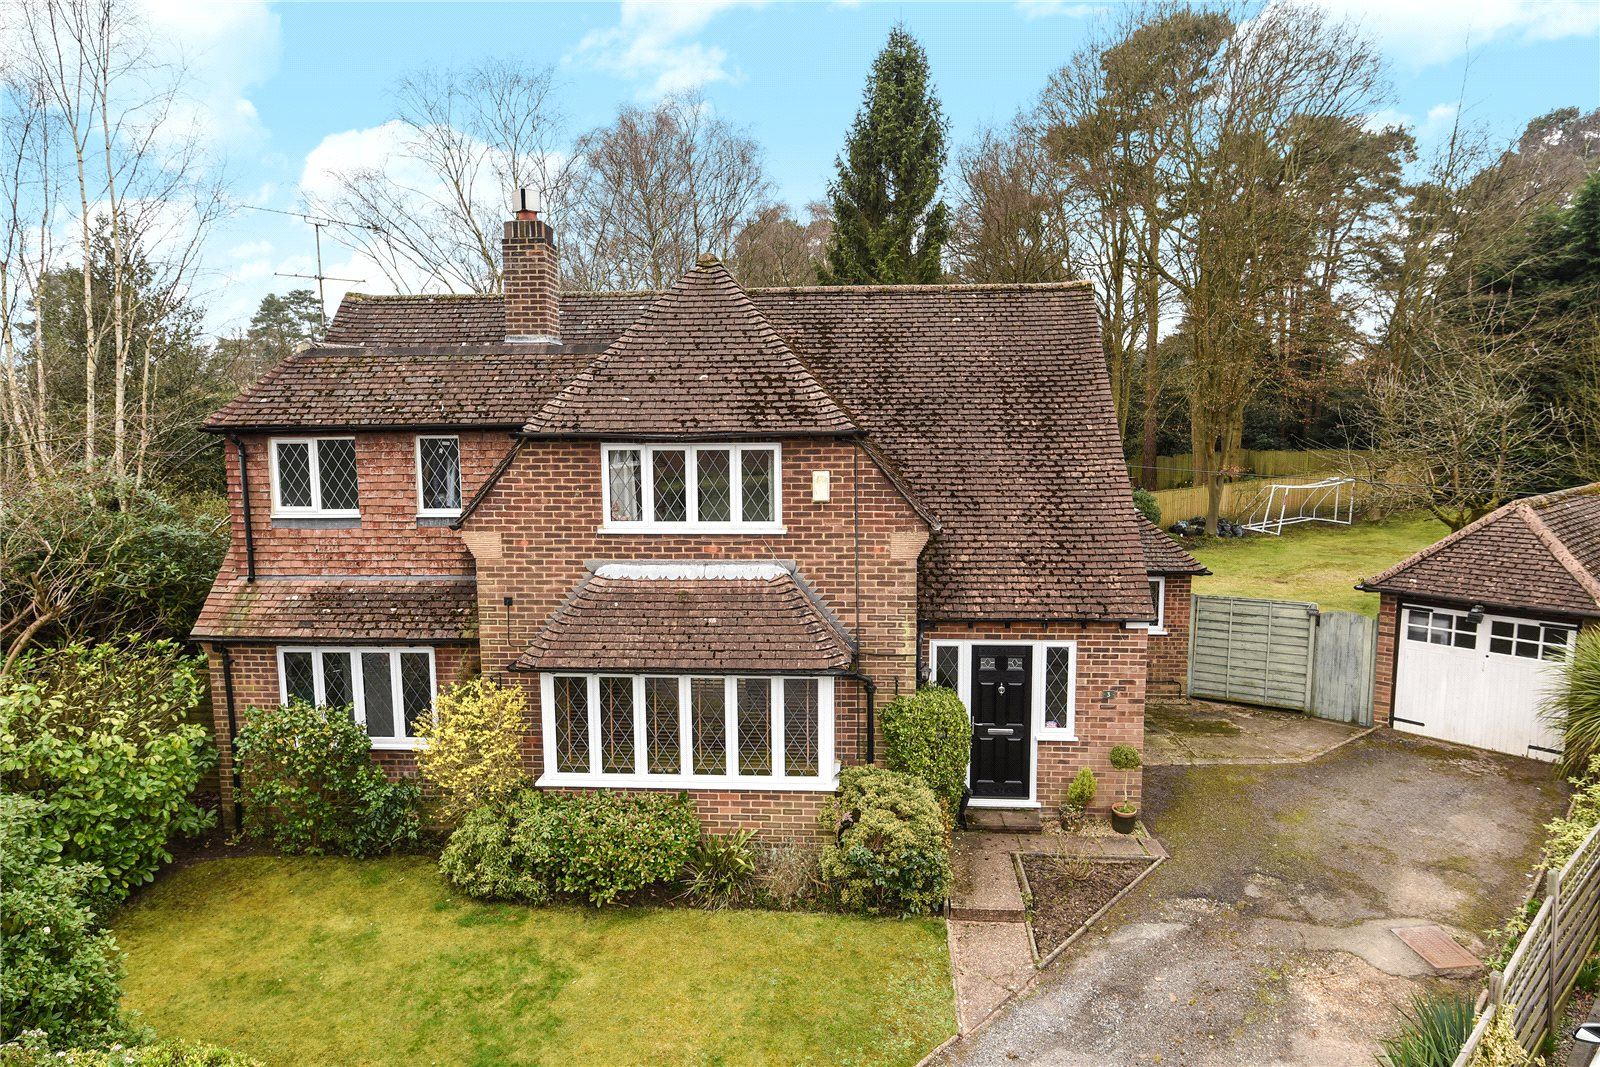 4 Bedrooms Detached House for sale in Little Moor, Sandhurst, Berkshire, GU47